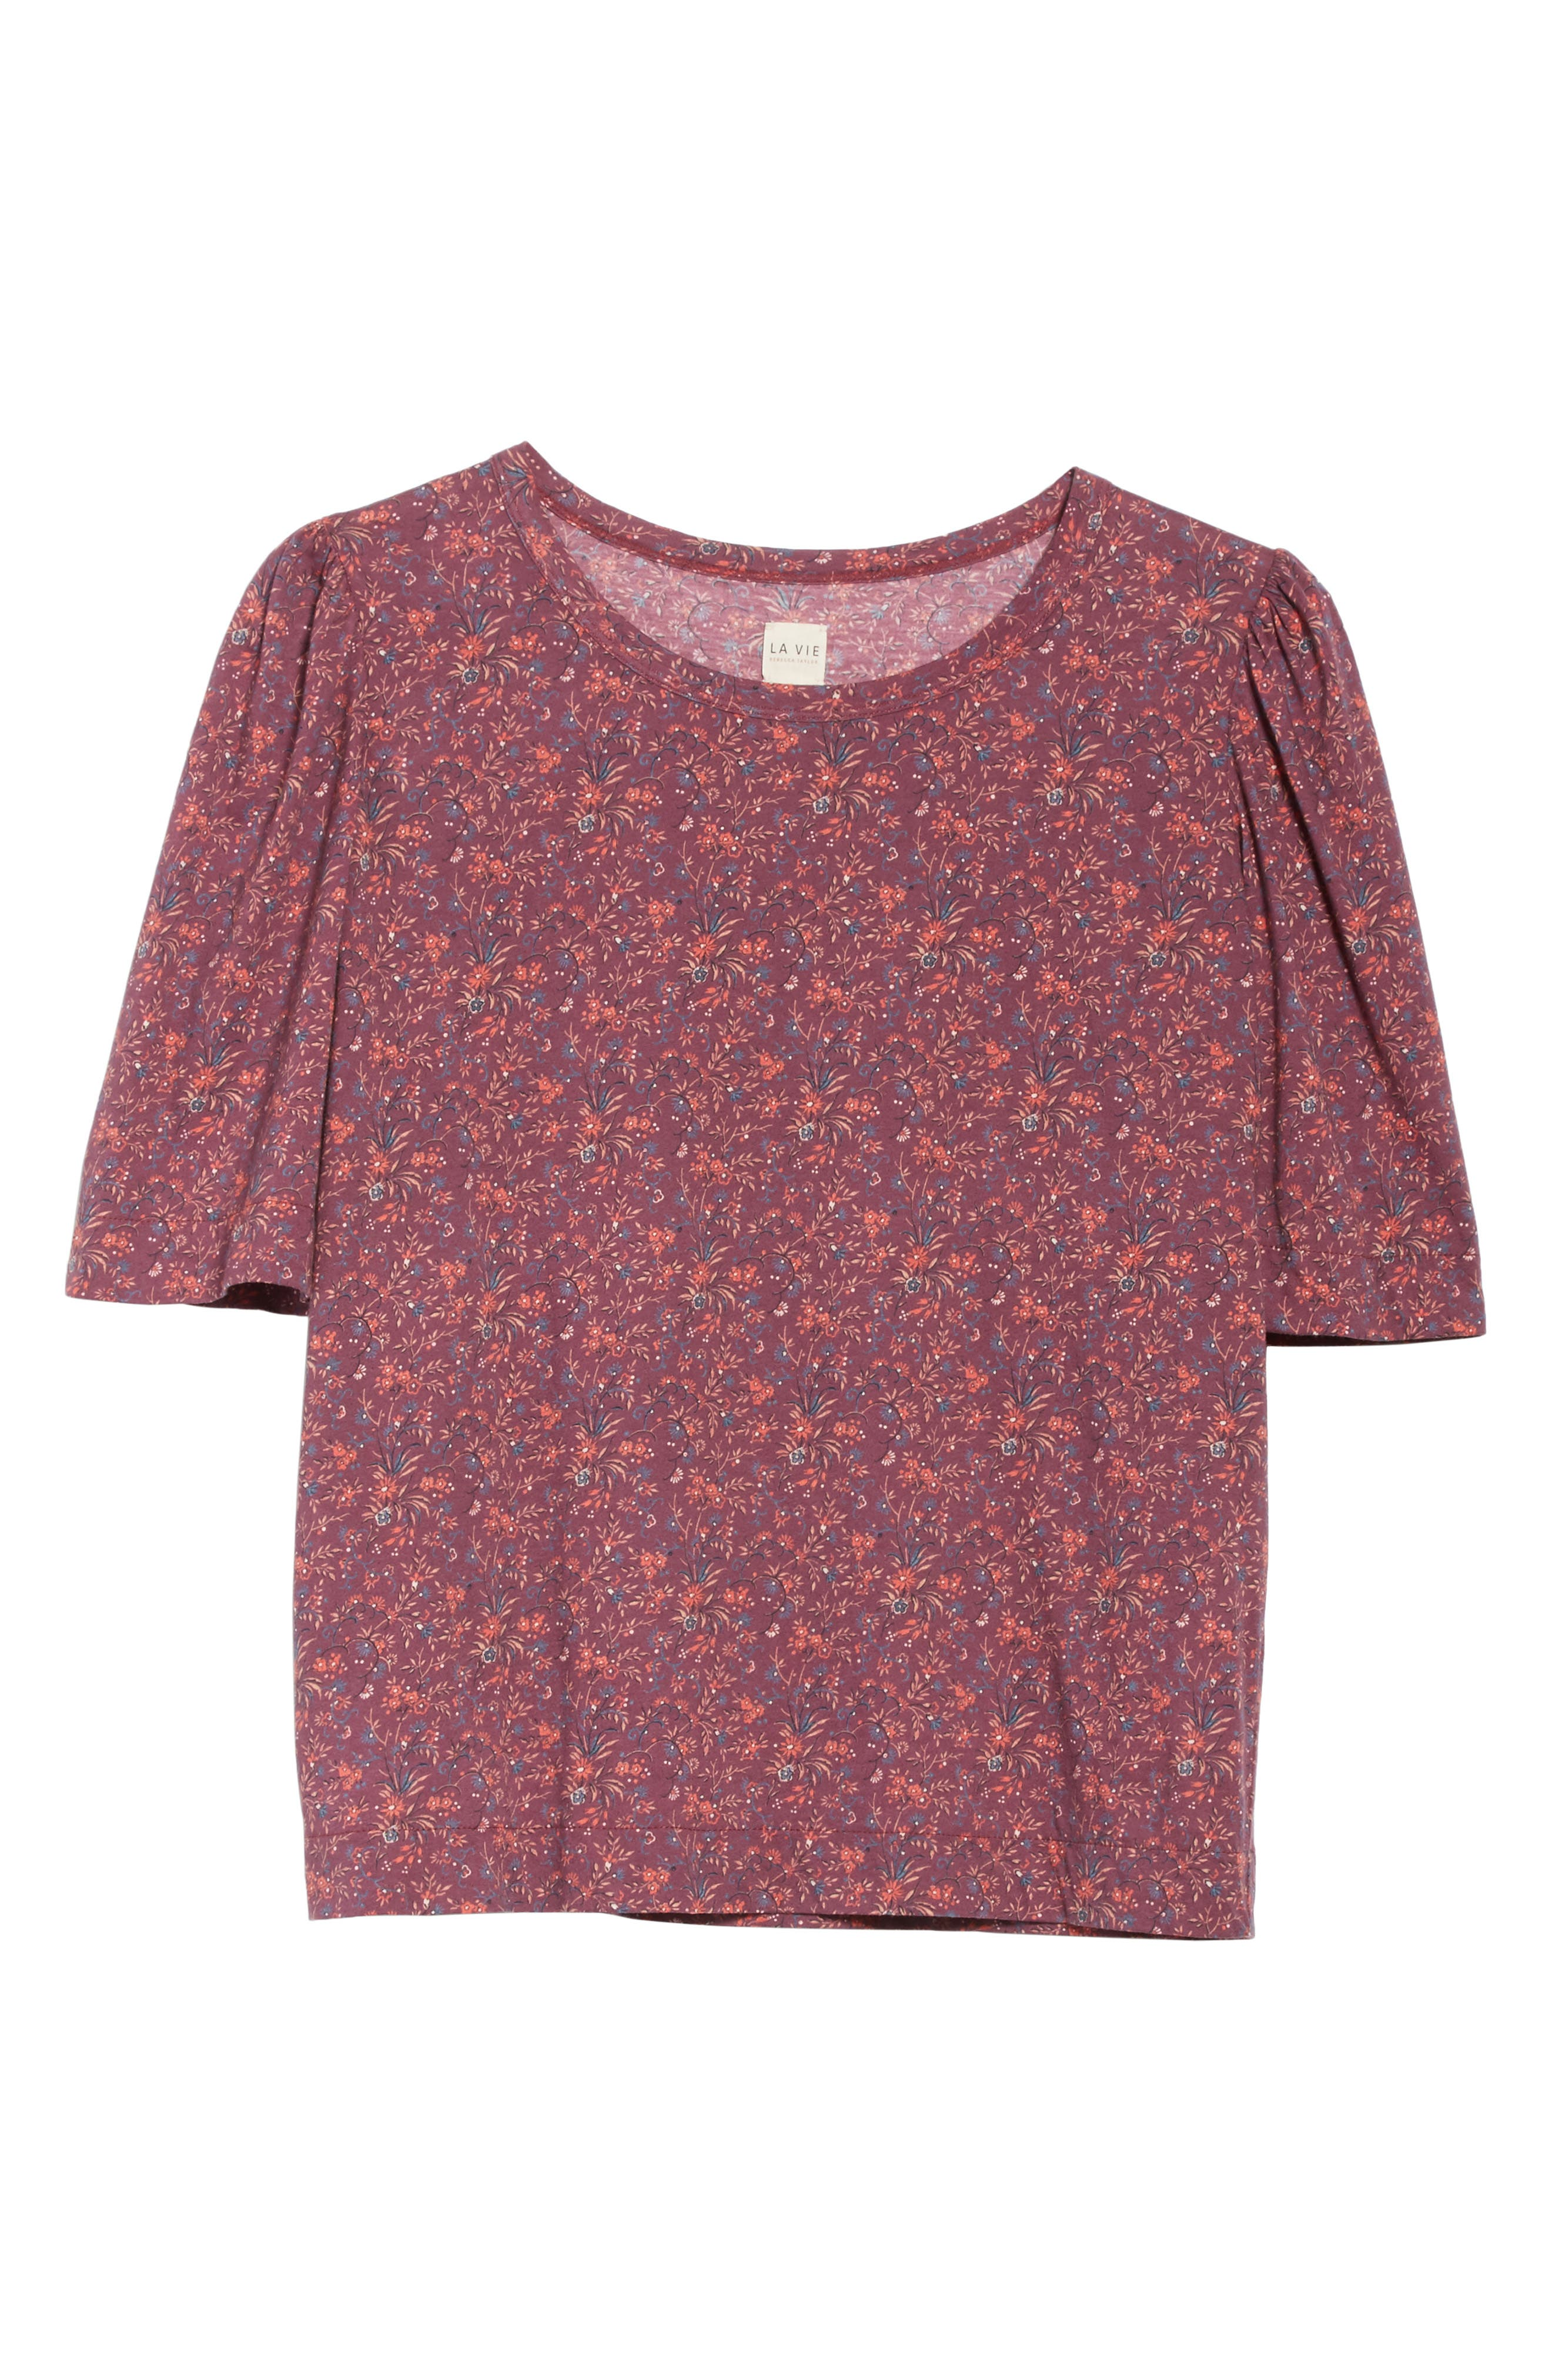 Rebecca Taylor Brittany Floral Jersey Top,                             Alternate thumbnail 6, color,                             503